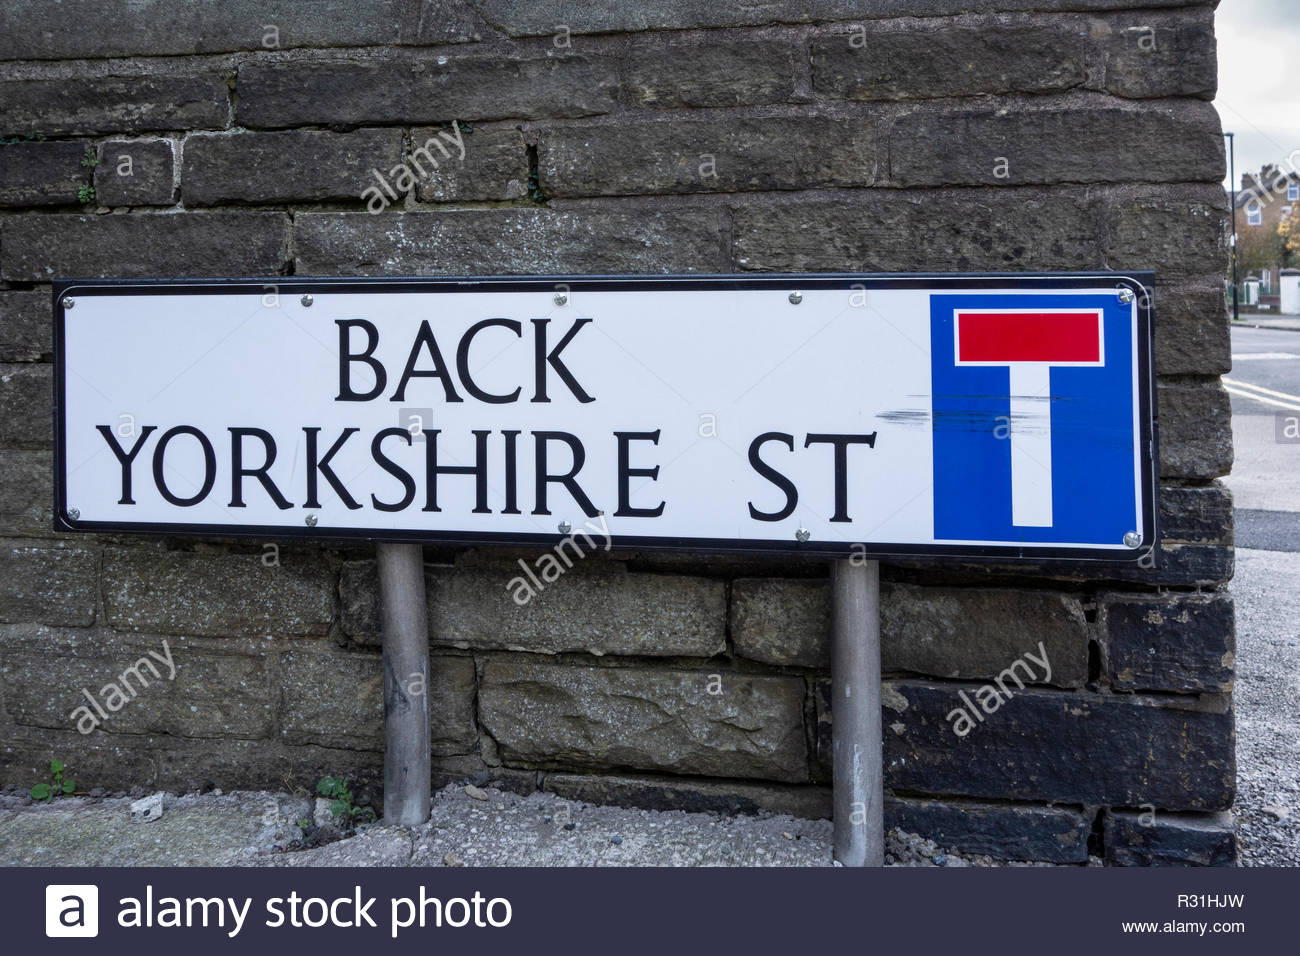 Street sign or road sign for Back Yorkshire Street, a cul de sac in Morecambe, Lancashire - Stock Image